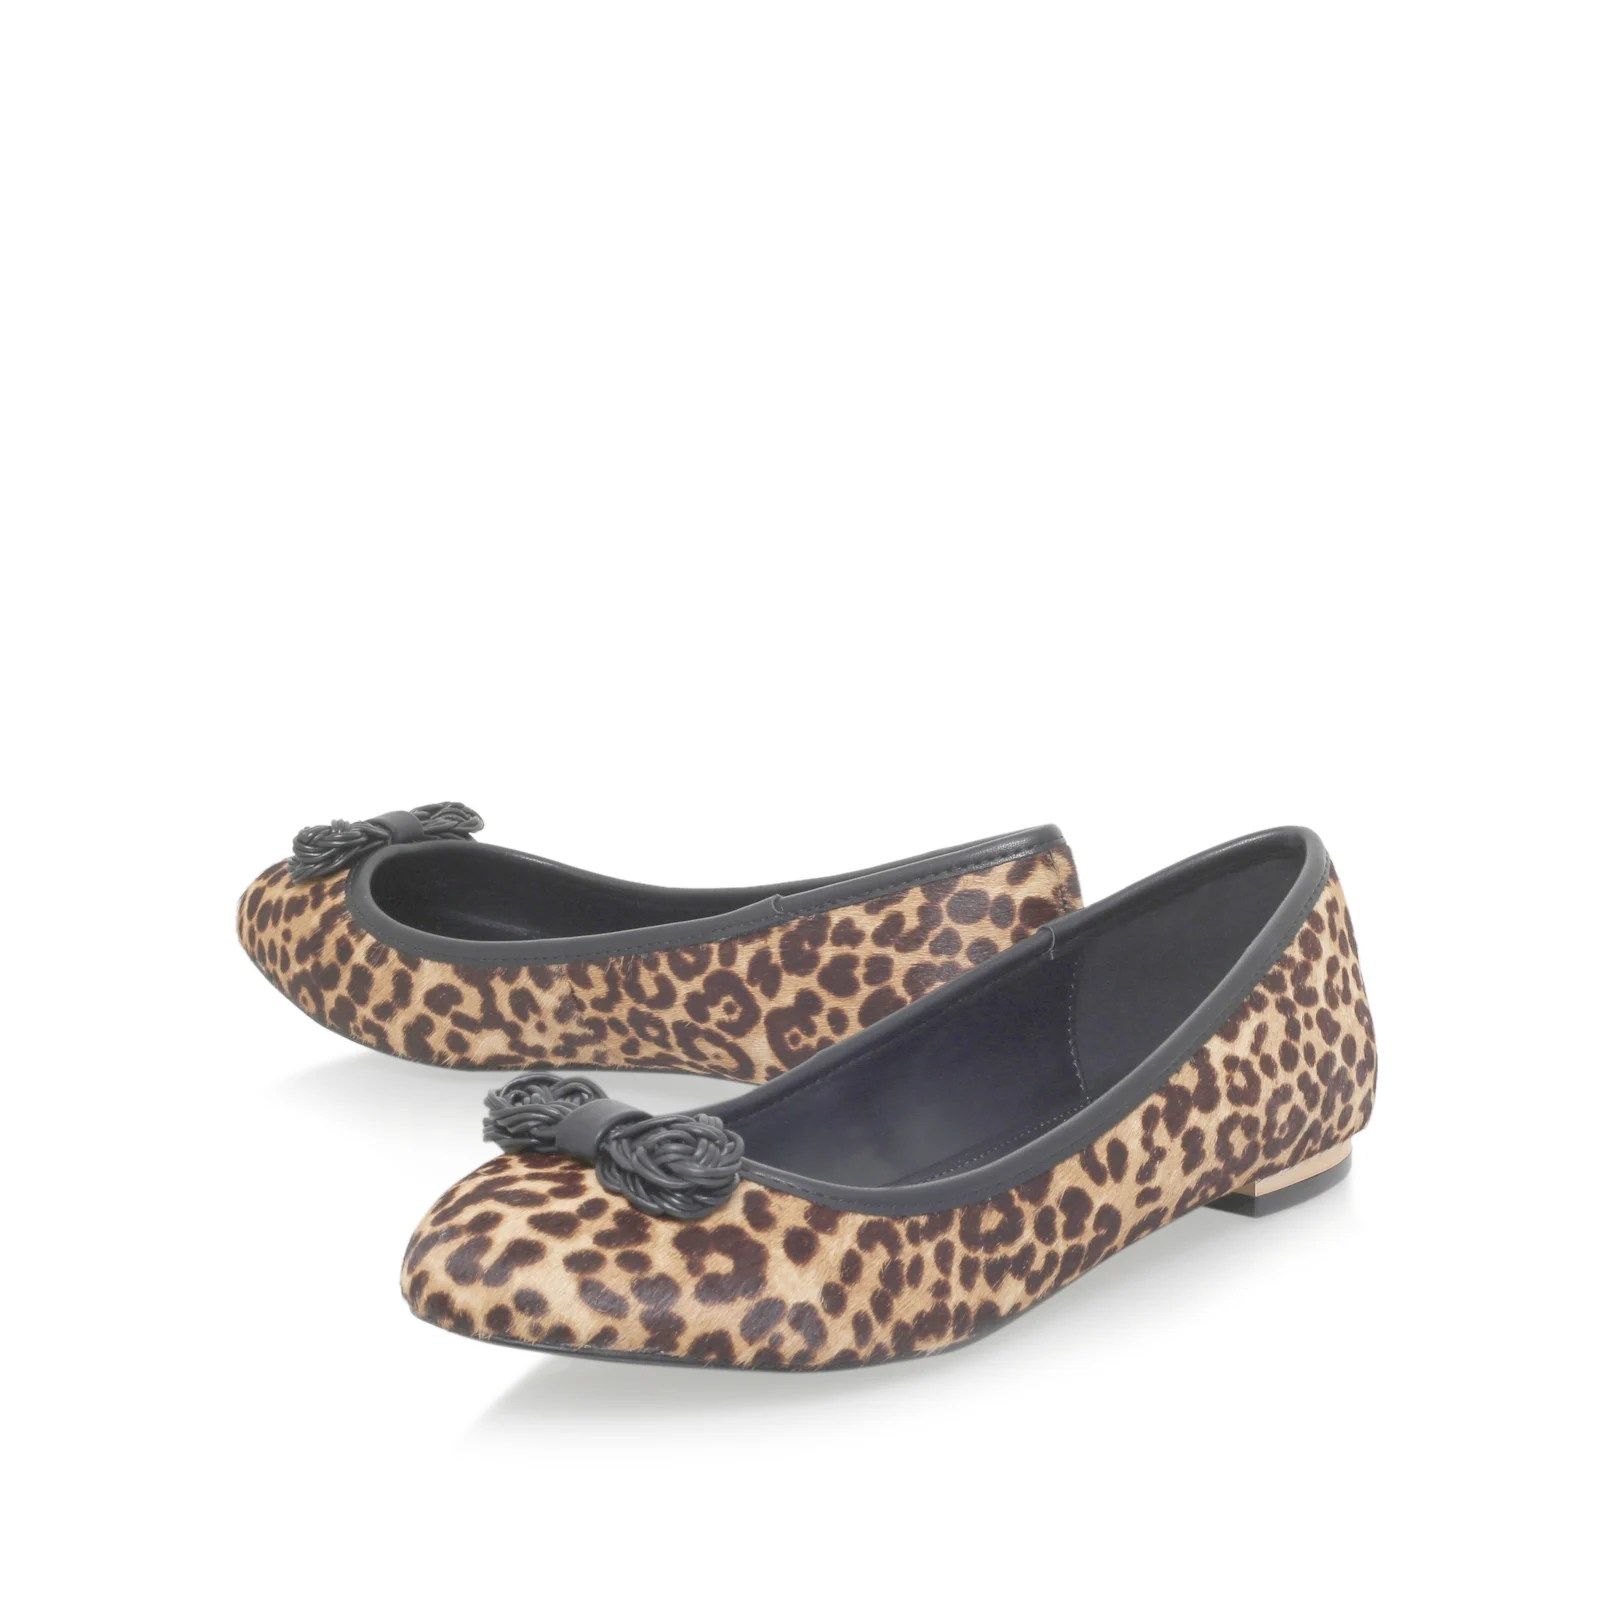 Libras A Quilos Kg By Kurt Geiger Libra Flat Slip On Print Shoes In Brown